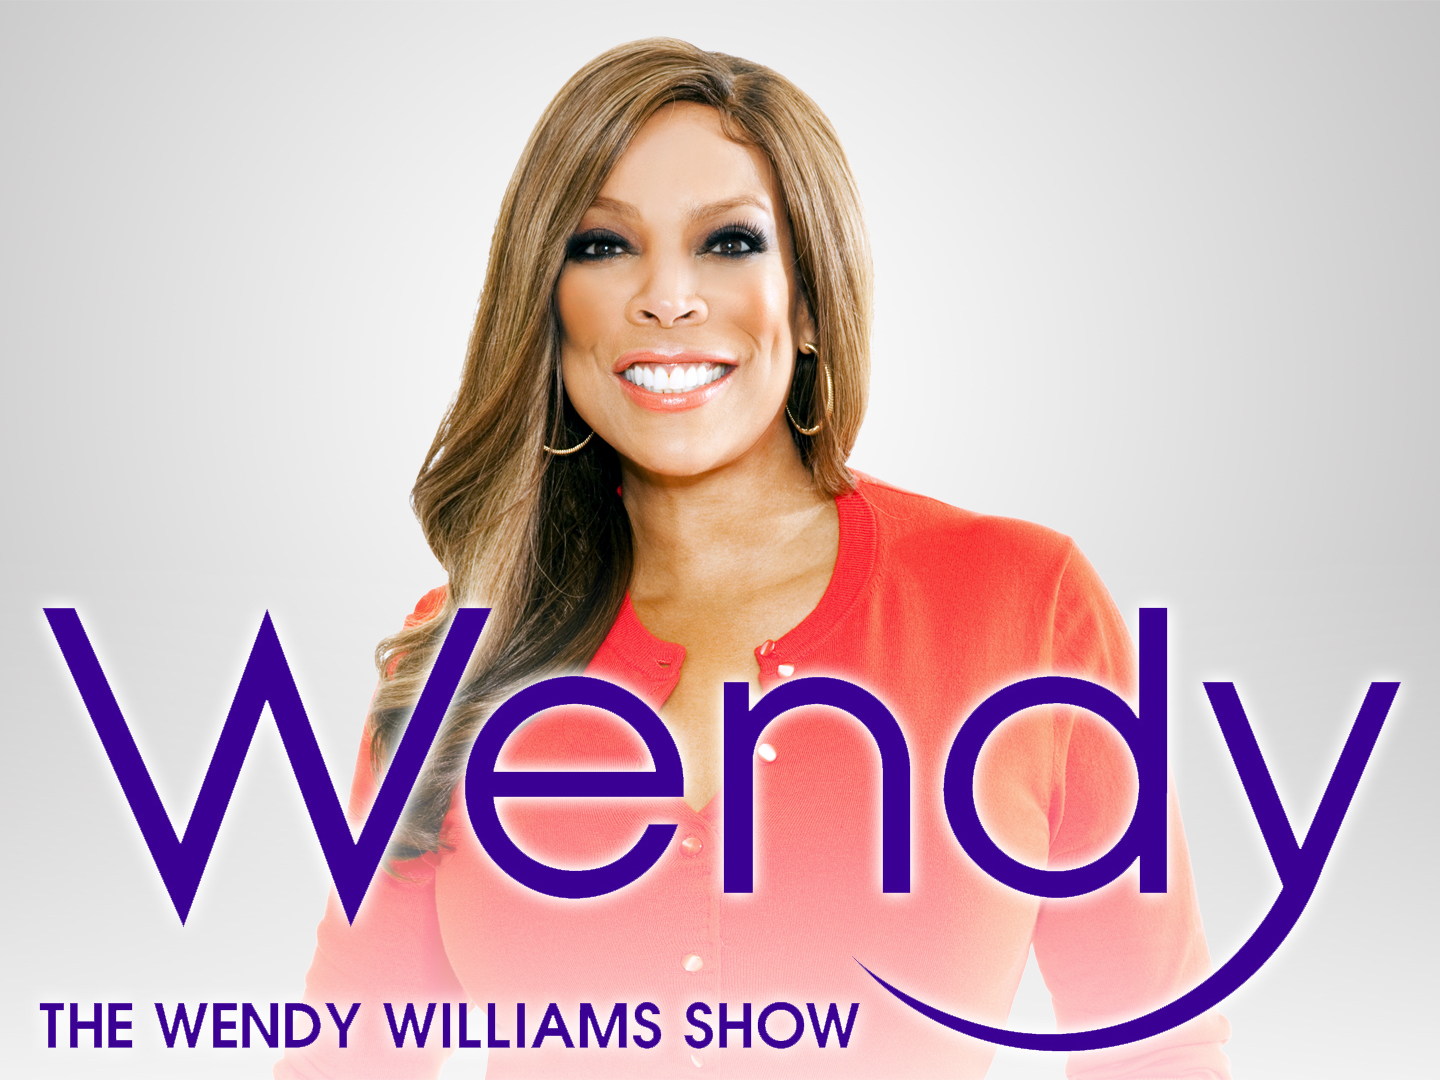 wendy williams show logo.jpg